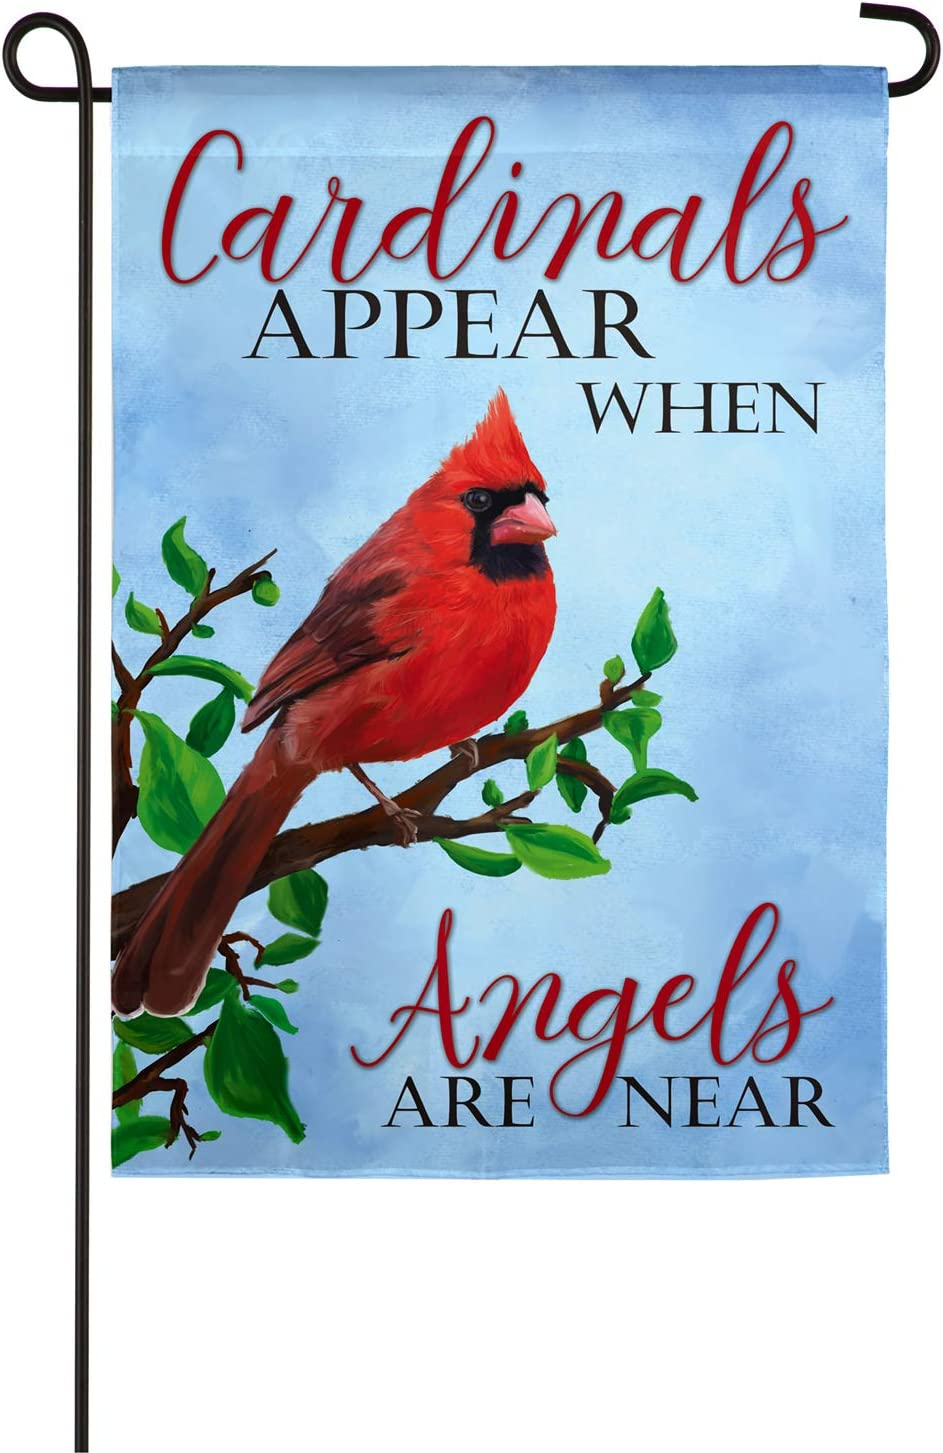 Evergreen Flag Beautiful Christmas Angels and Cardinals Suede Garden Flag - 13 x 18 Inches Fade and Weather Resistant Outdoor Decoration for Homes, Yards and Gardens